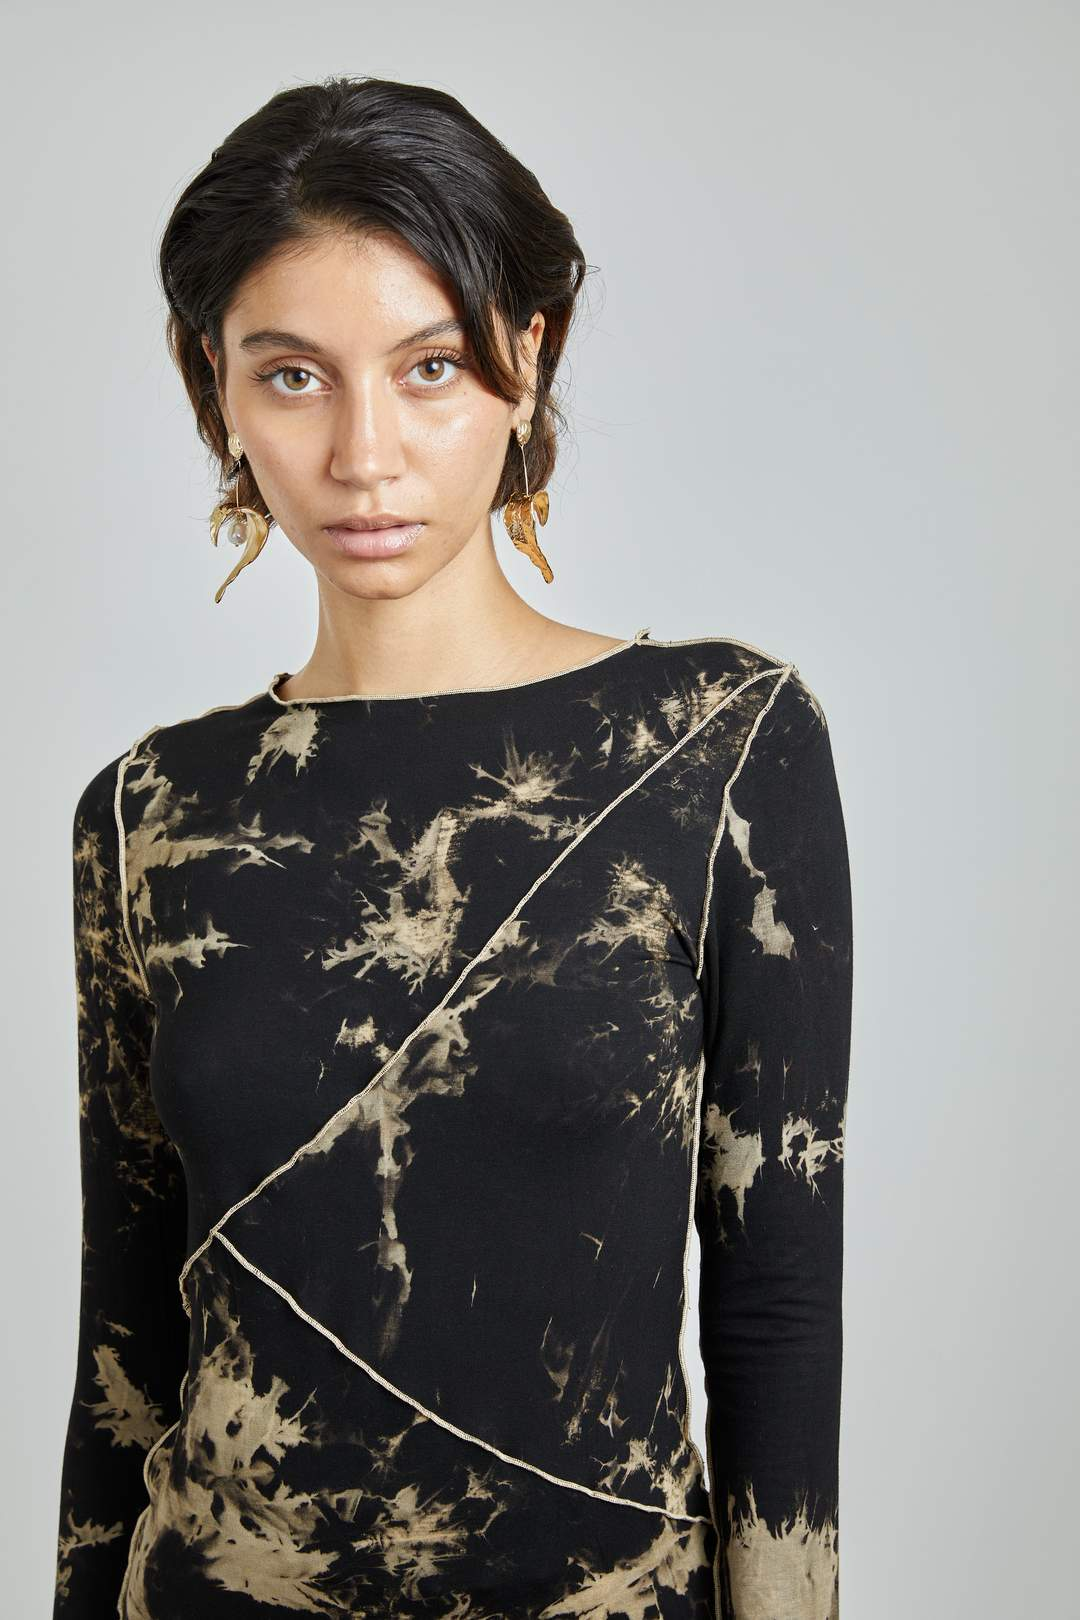 LONG SLEEVE STITCH T by Kim Shui, available on kimshui.net for $169 Bella Hadid Top Exact Product